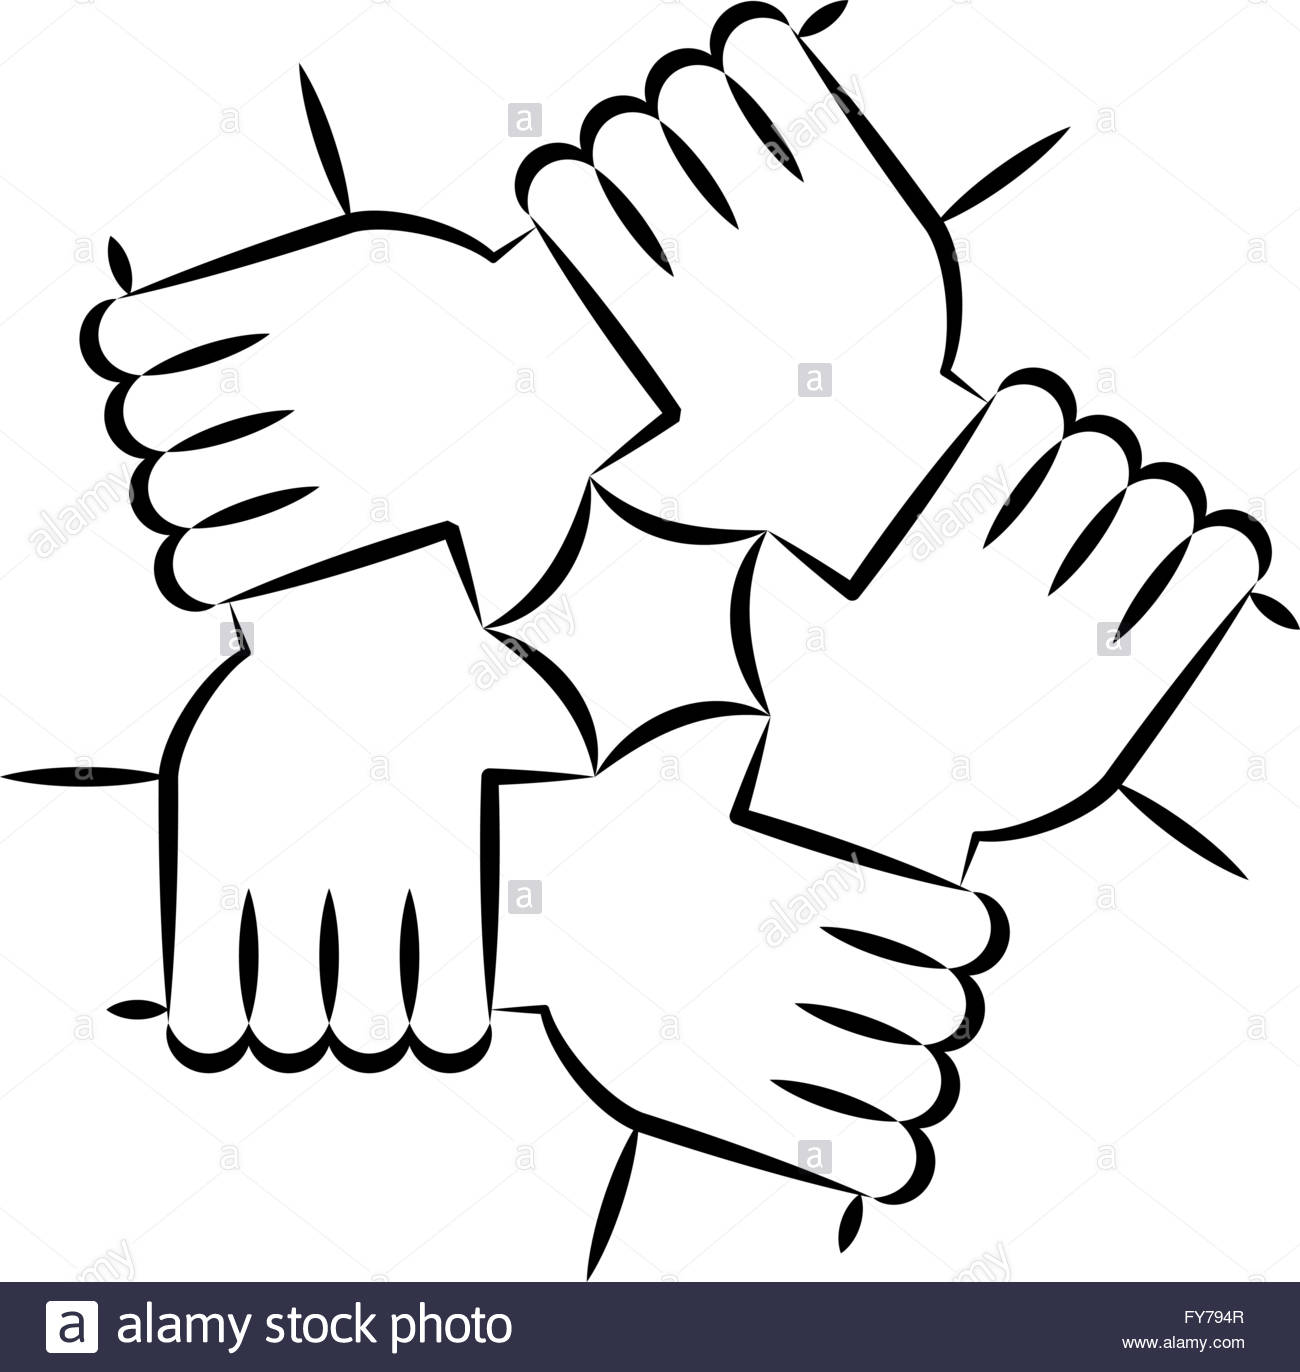 solidarity circle line art on white five hands holding praying hands prayer clipart prayer hands clip art black and white